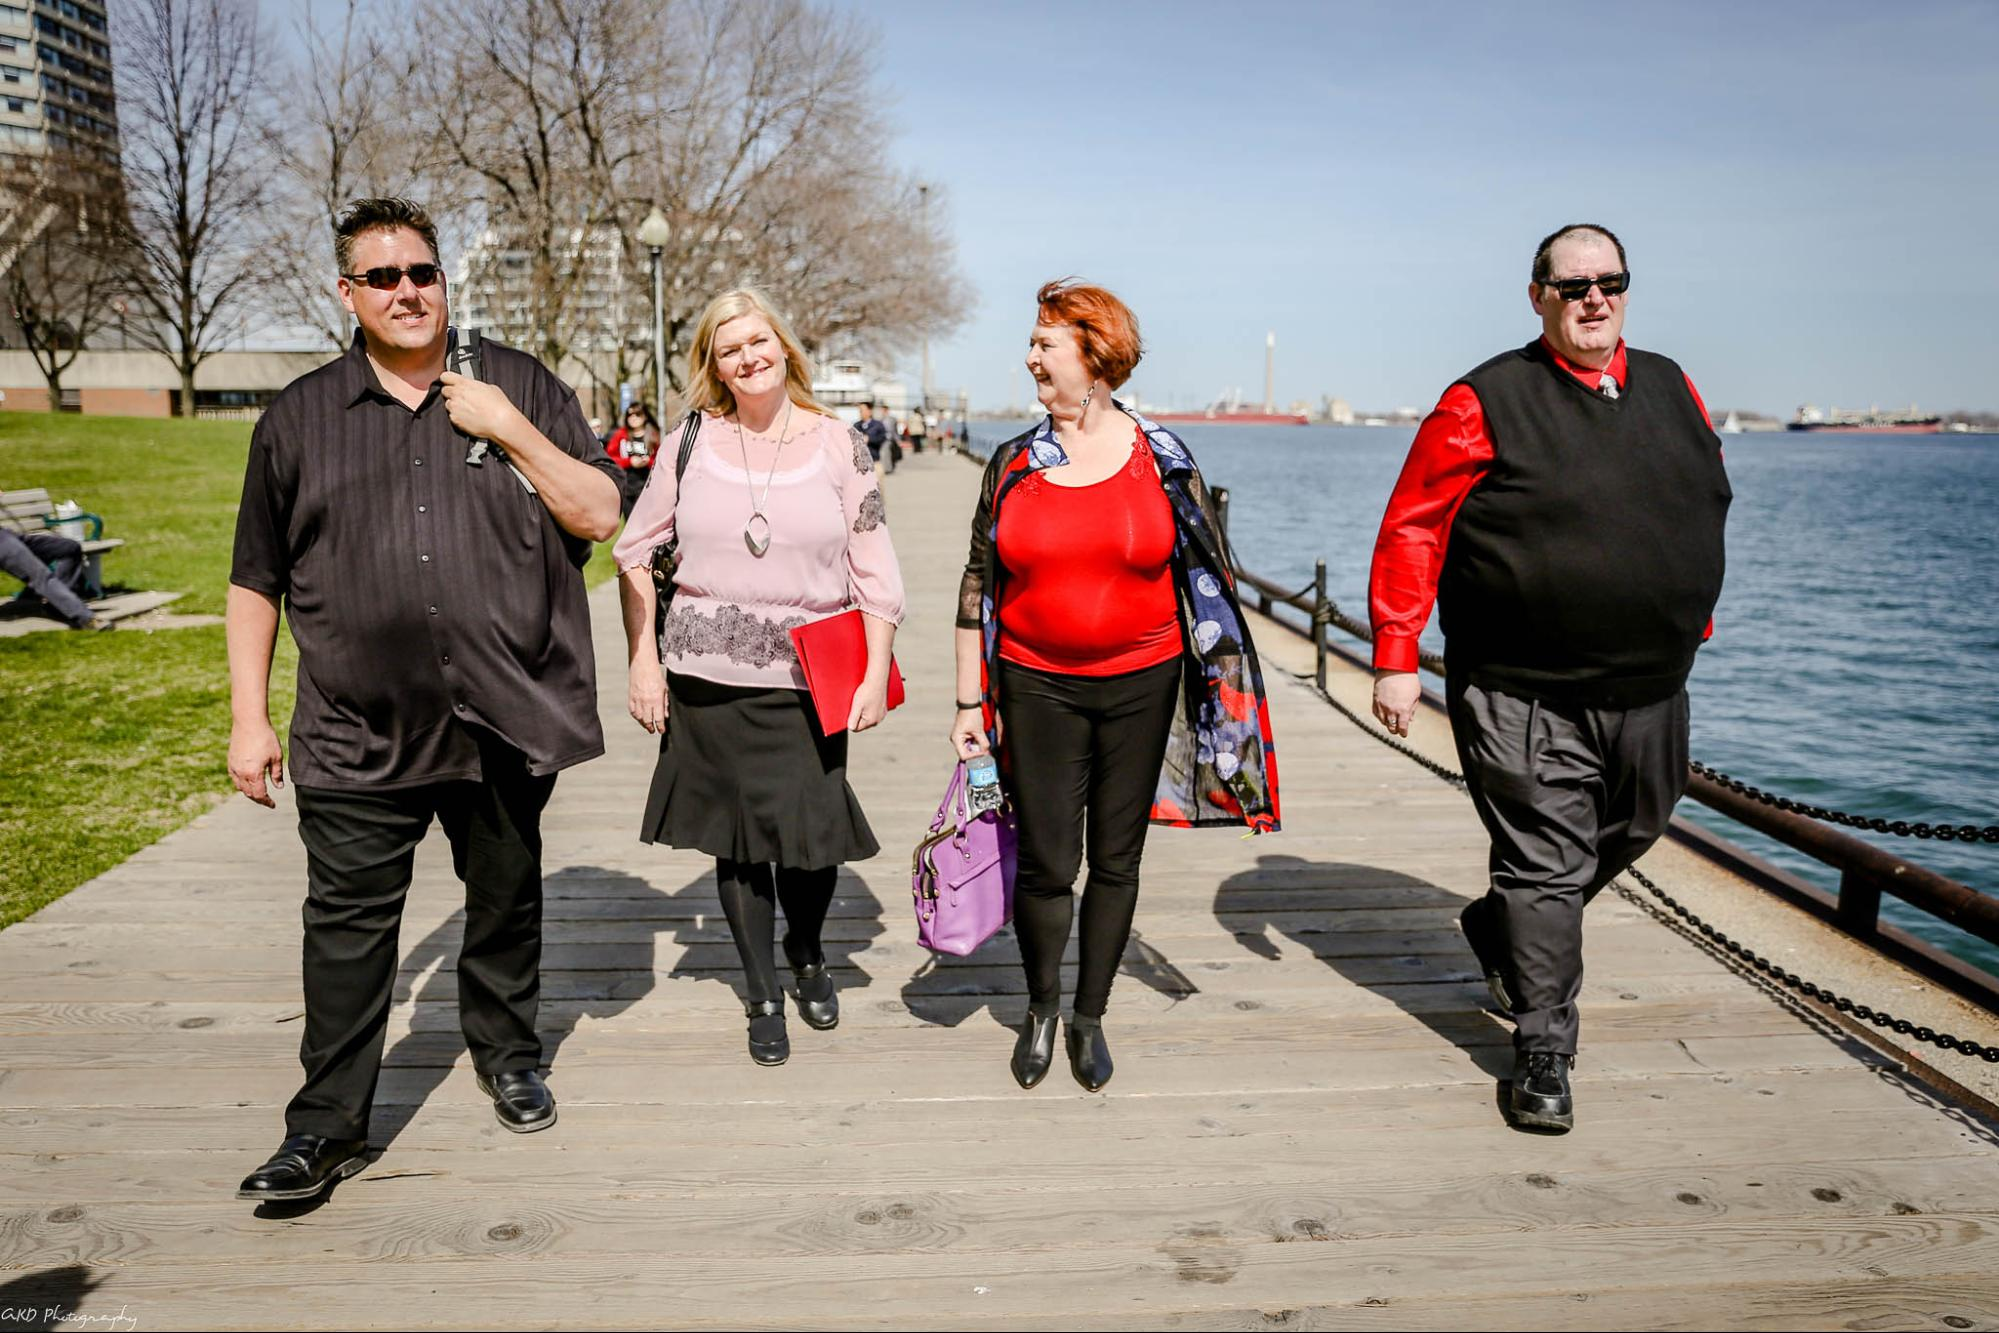 Two adult males and two adult females with obesity are walking outside, smiling and conversing with each other.